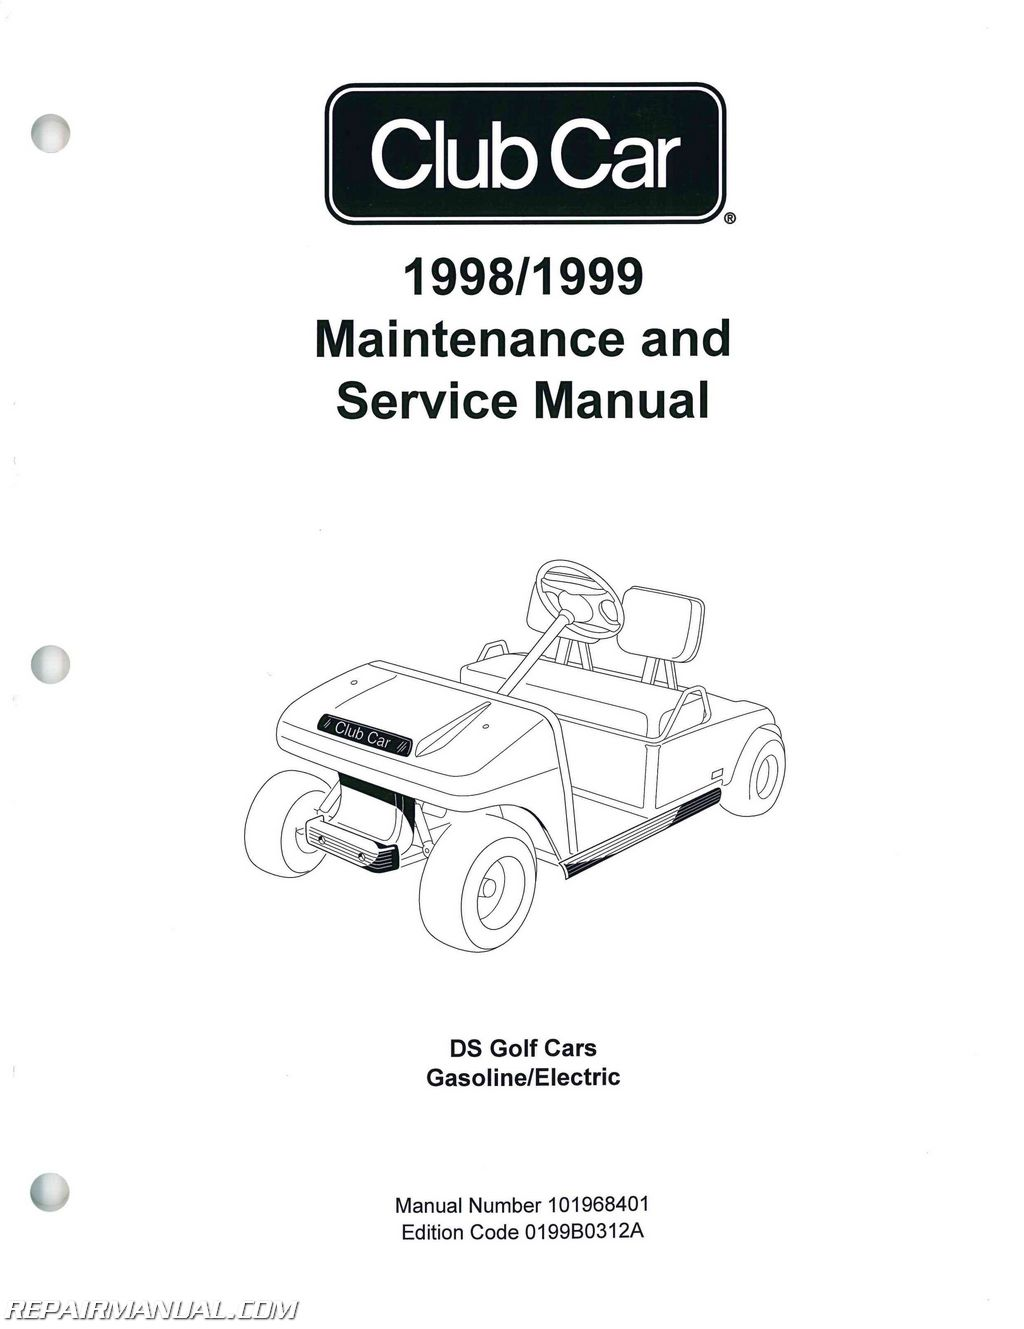 hight resolution of 1998 1999 club car ds golf car service manual rh repairmanual com 1998 club car manual 1998 club car manual